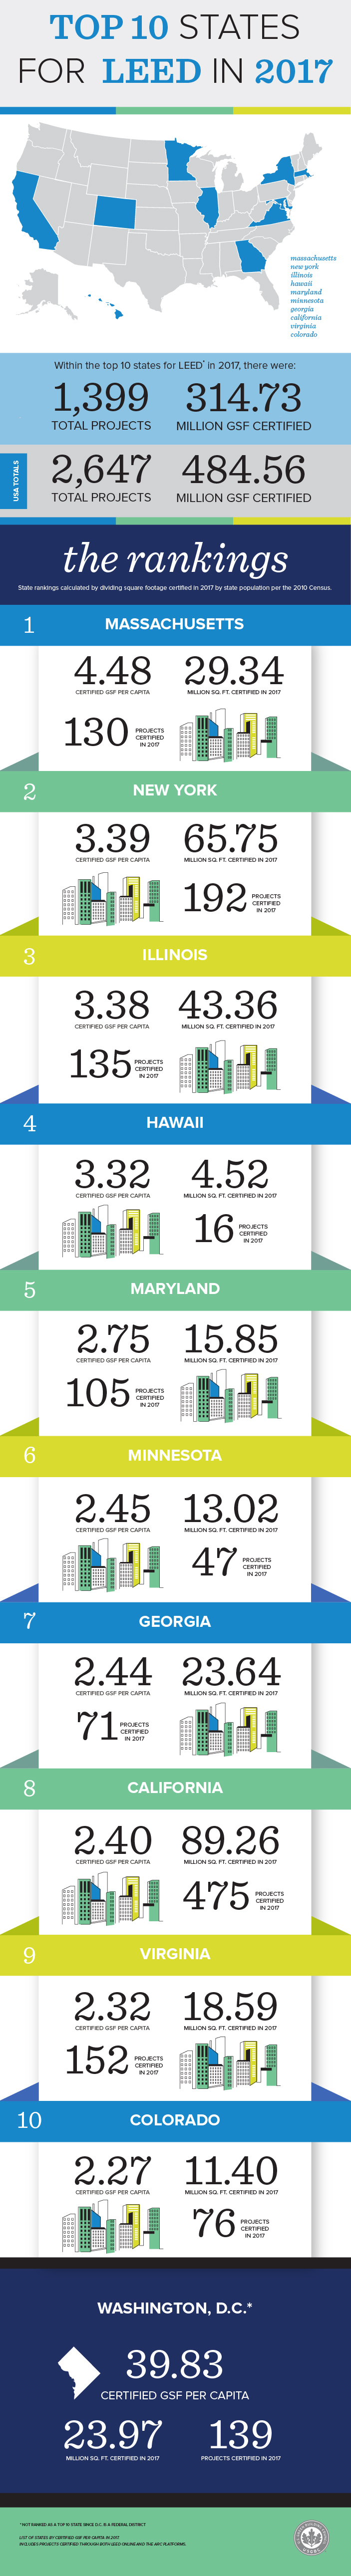 Top 10 states for LEED in 2017